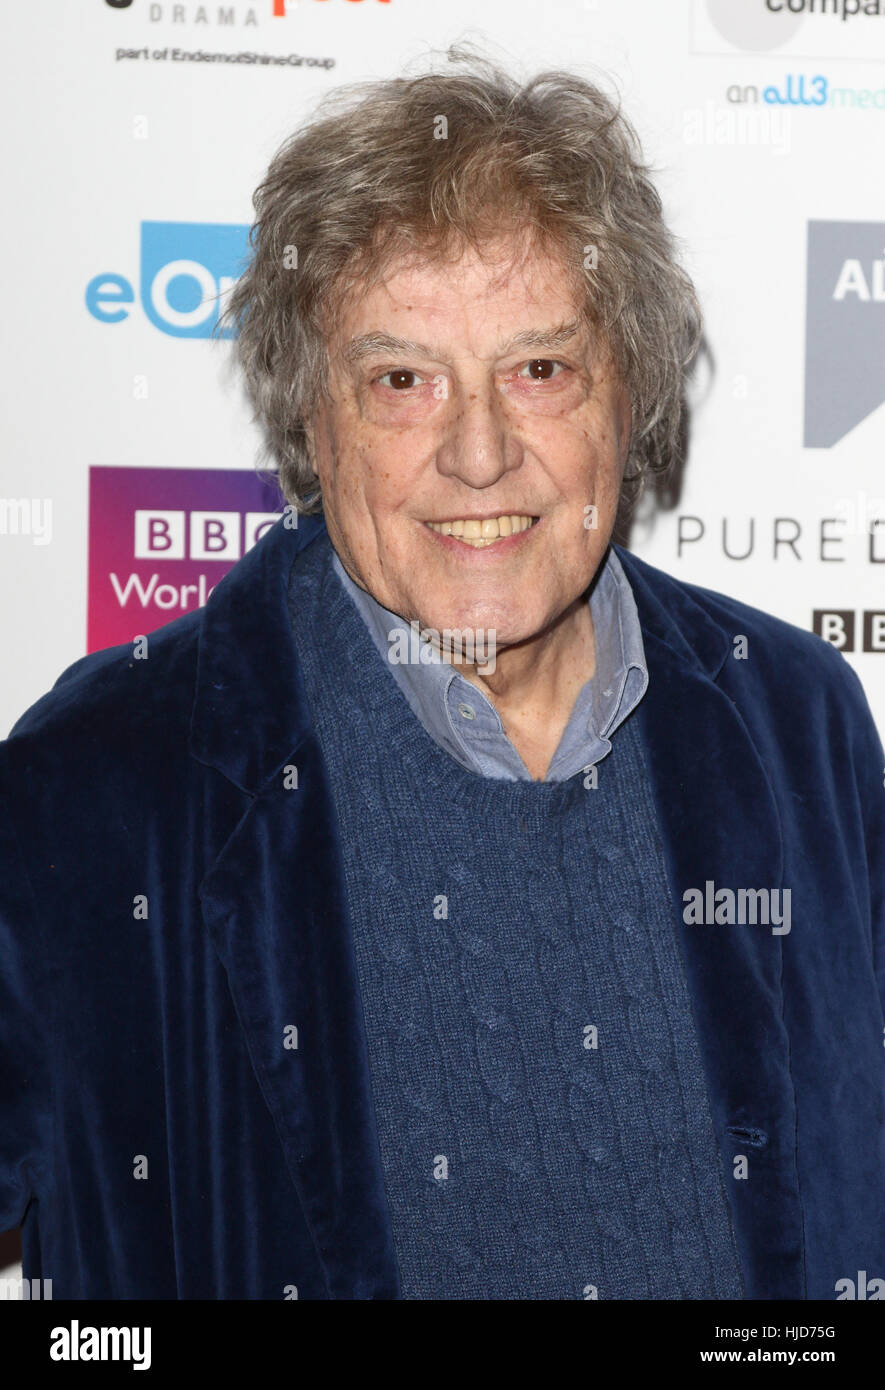 London, UK. 23rd January, 2017. Sir Tom Stoppard at the Writers Guild Awards 2017 at The Royal College of Physicians, - Stock Image